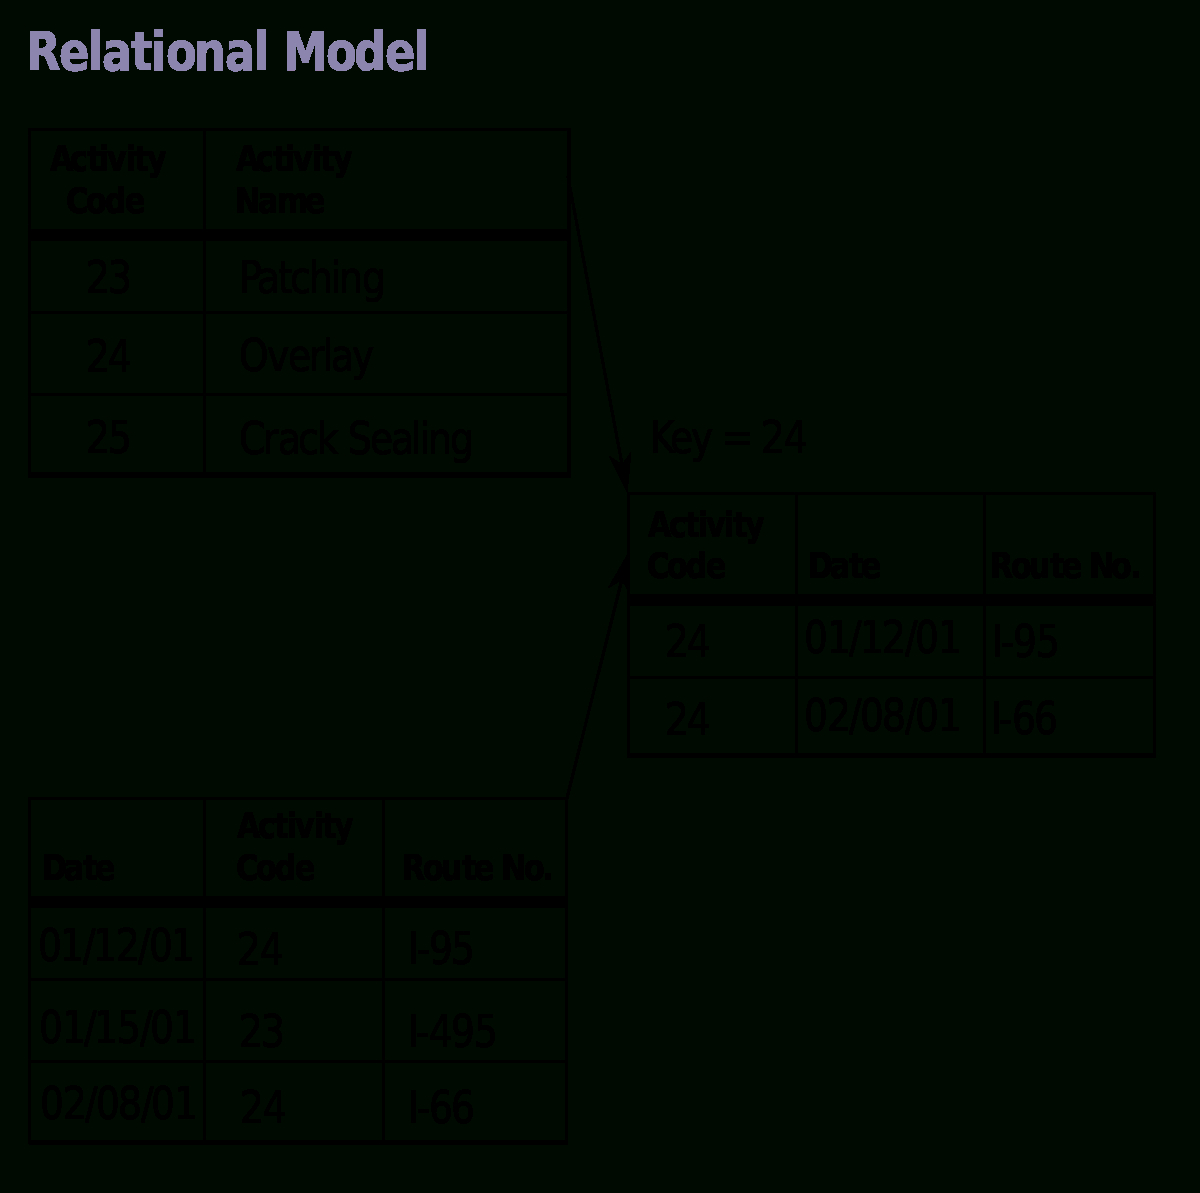 Relational Model - Simple English Wikipedia, The Free within Relational Data Model Diagram